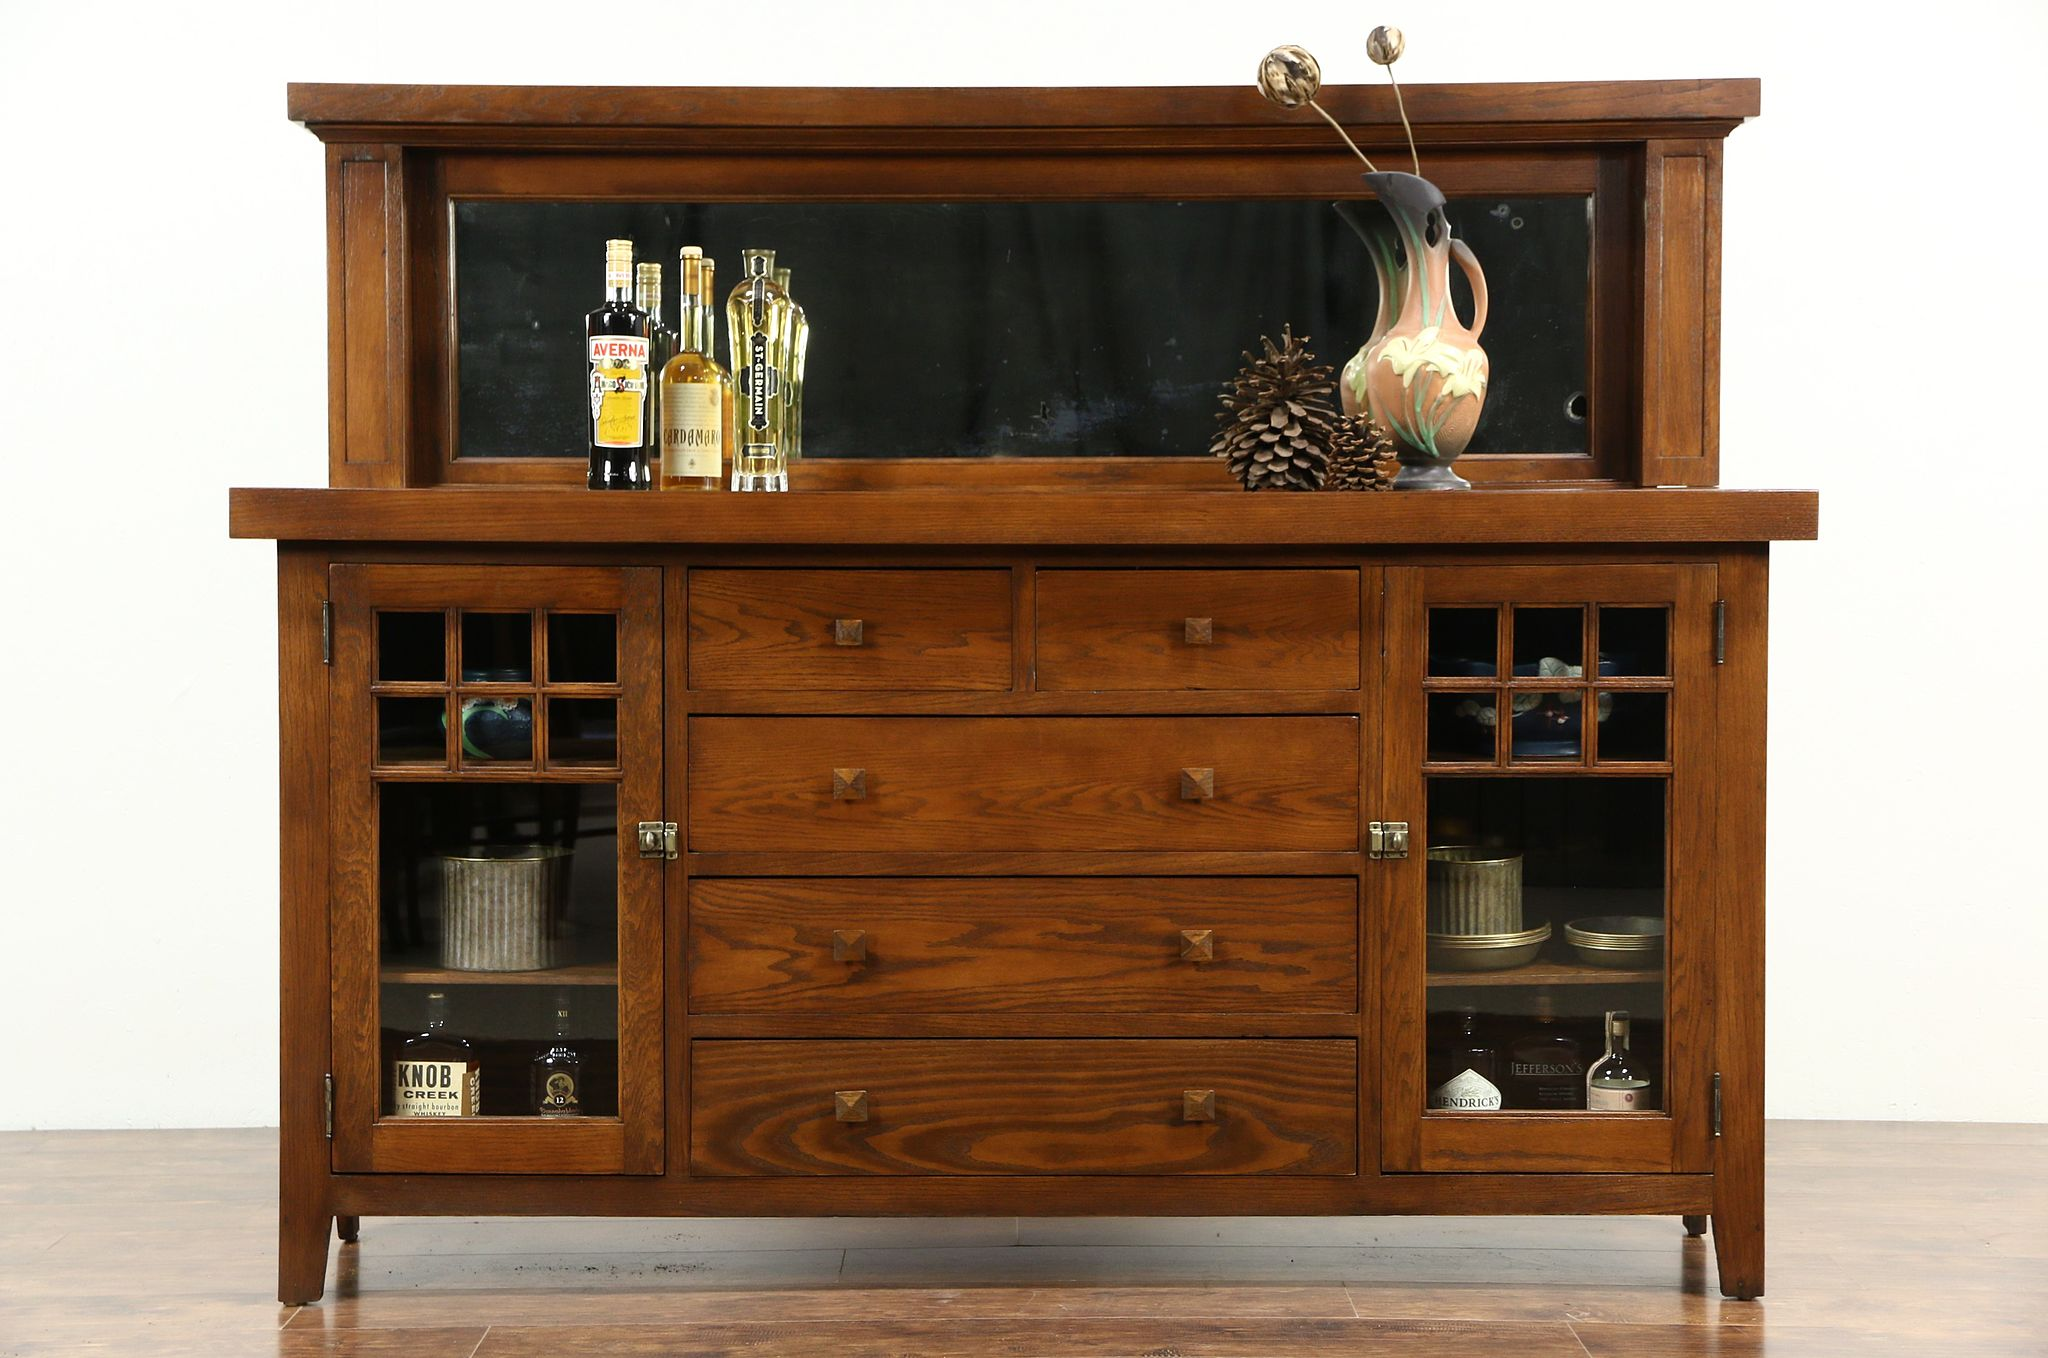 Antique arts and crafts furniture - Arts Crafts Mission Oak 1900 Antique Craftsman Sideboard Server